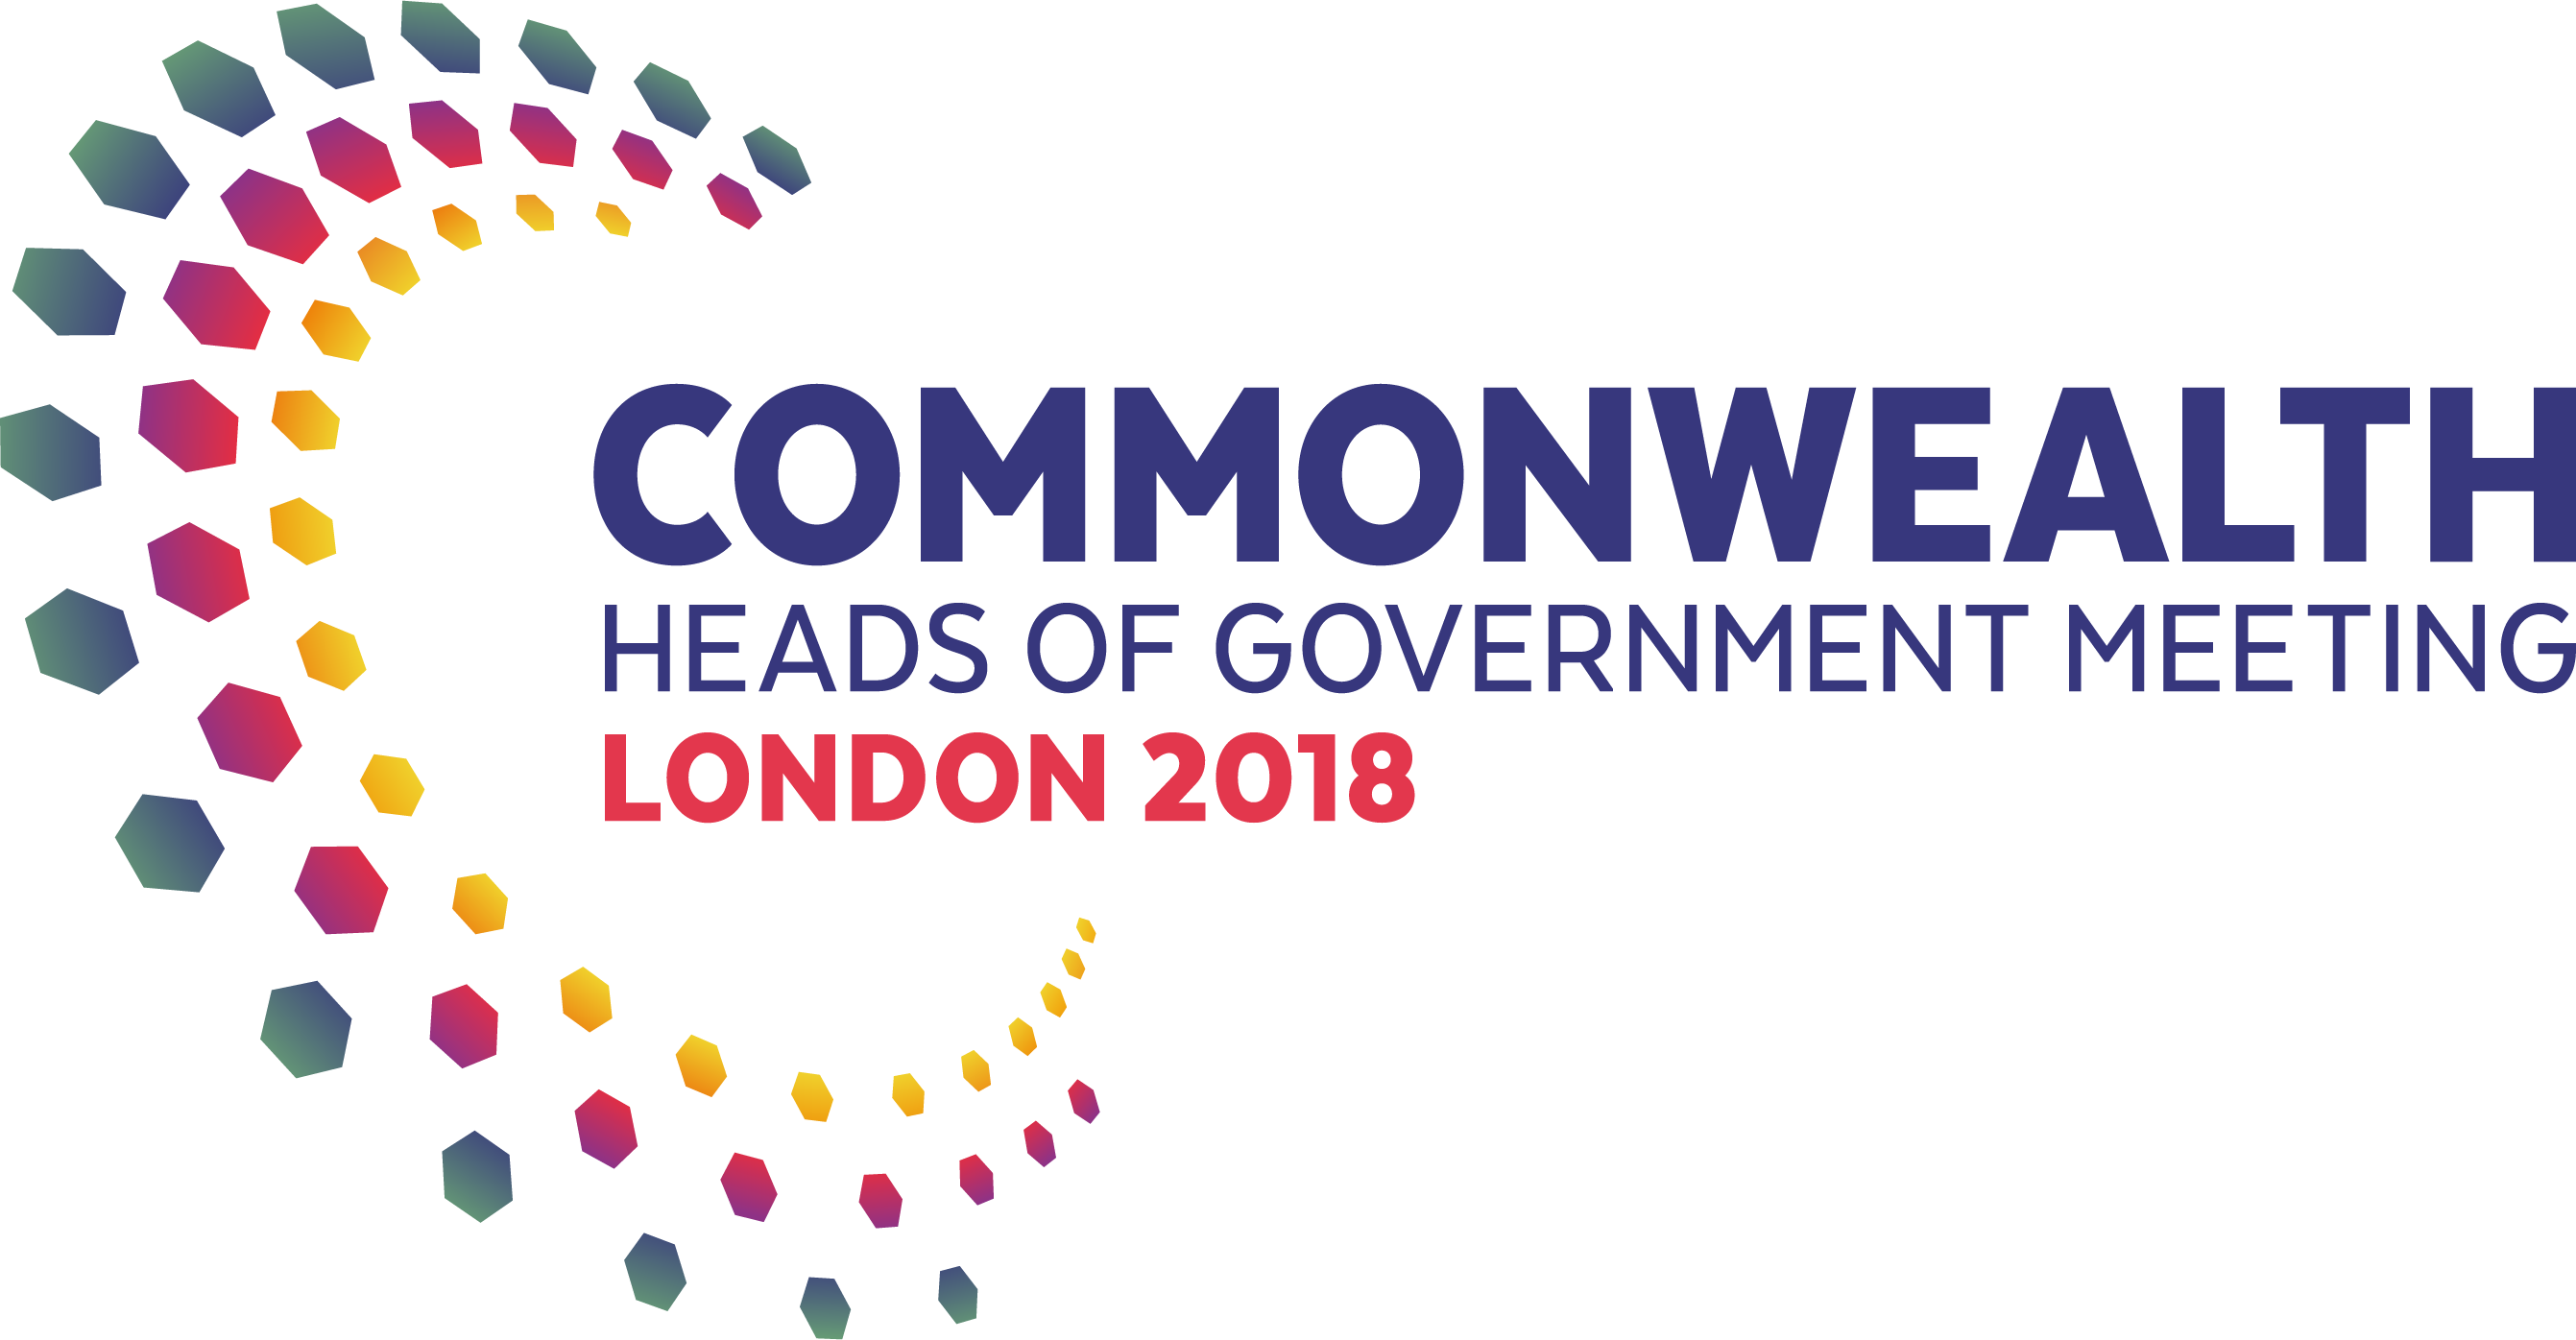 Commonwealth summit will seek to deliver transformational change for member countries, says Secretary-General